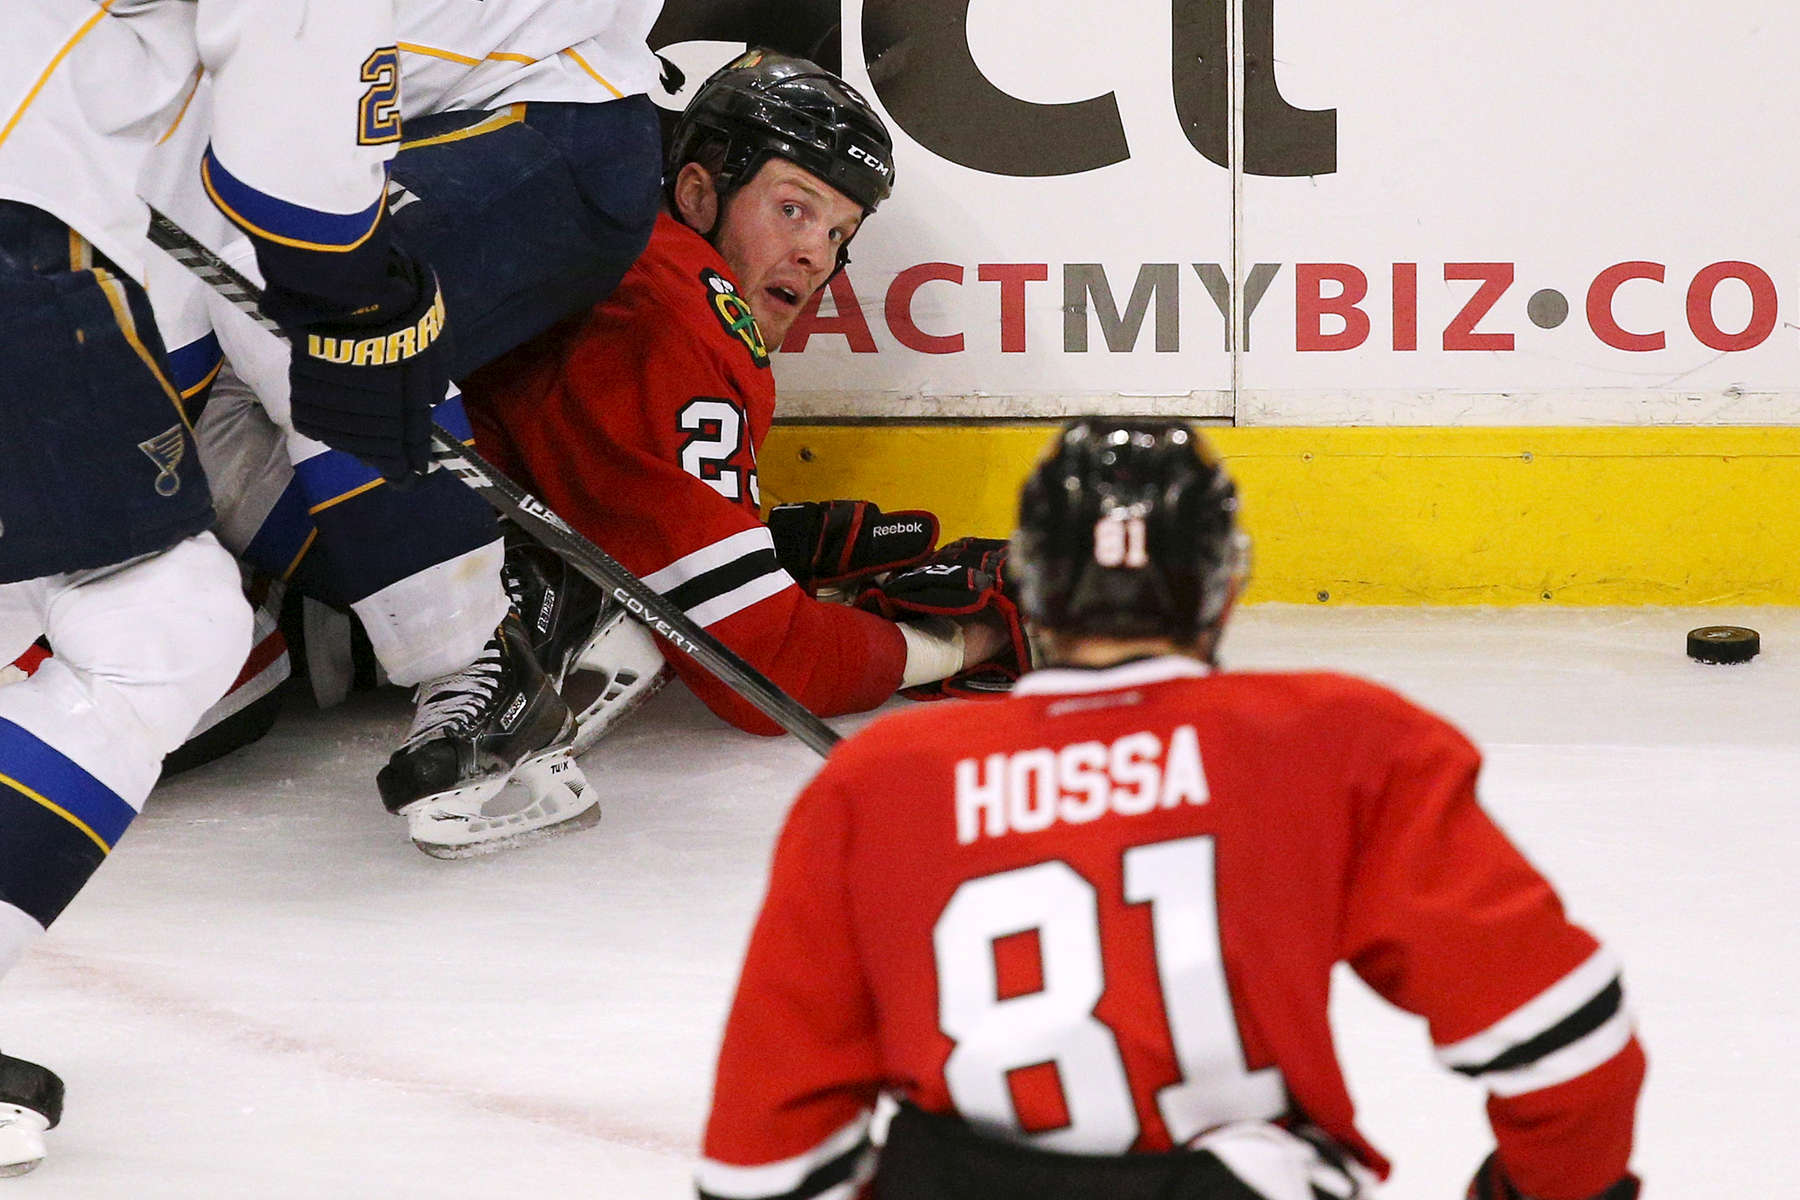 Chicago Blackhawks left wing Bryan Bickell looks up at right wing Marián Hossa after getting tangled with St. Louis Blues left wing Alexander Steen in the third period during Game 6 of a Western Conference quarterfinal playoff game between the Chicago Blackhawks and the St. Louis Blues at the United Center in Chicago.